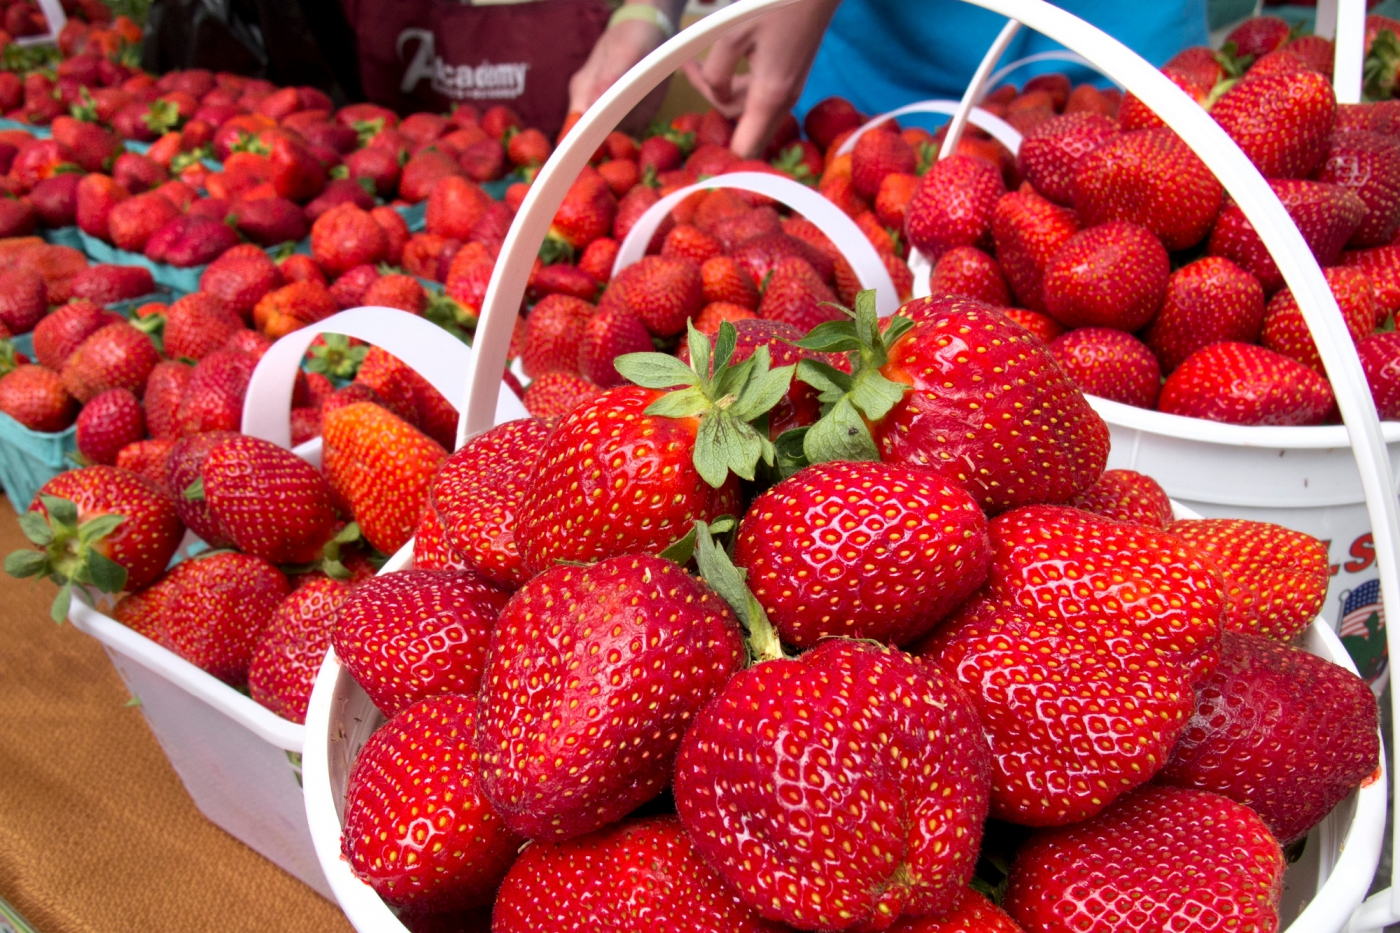 Sample some of Boone Hall Farm's delicious fresh produce at a local market!